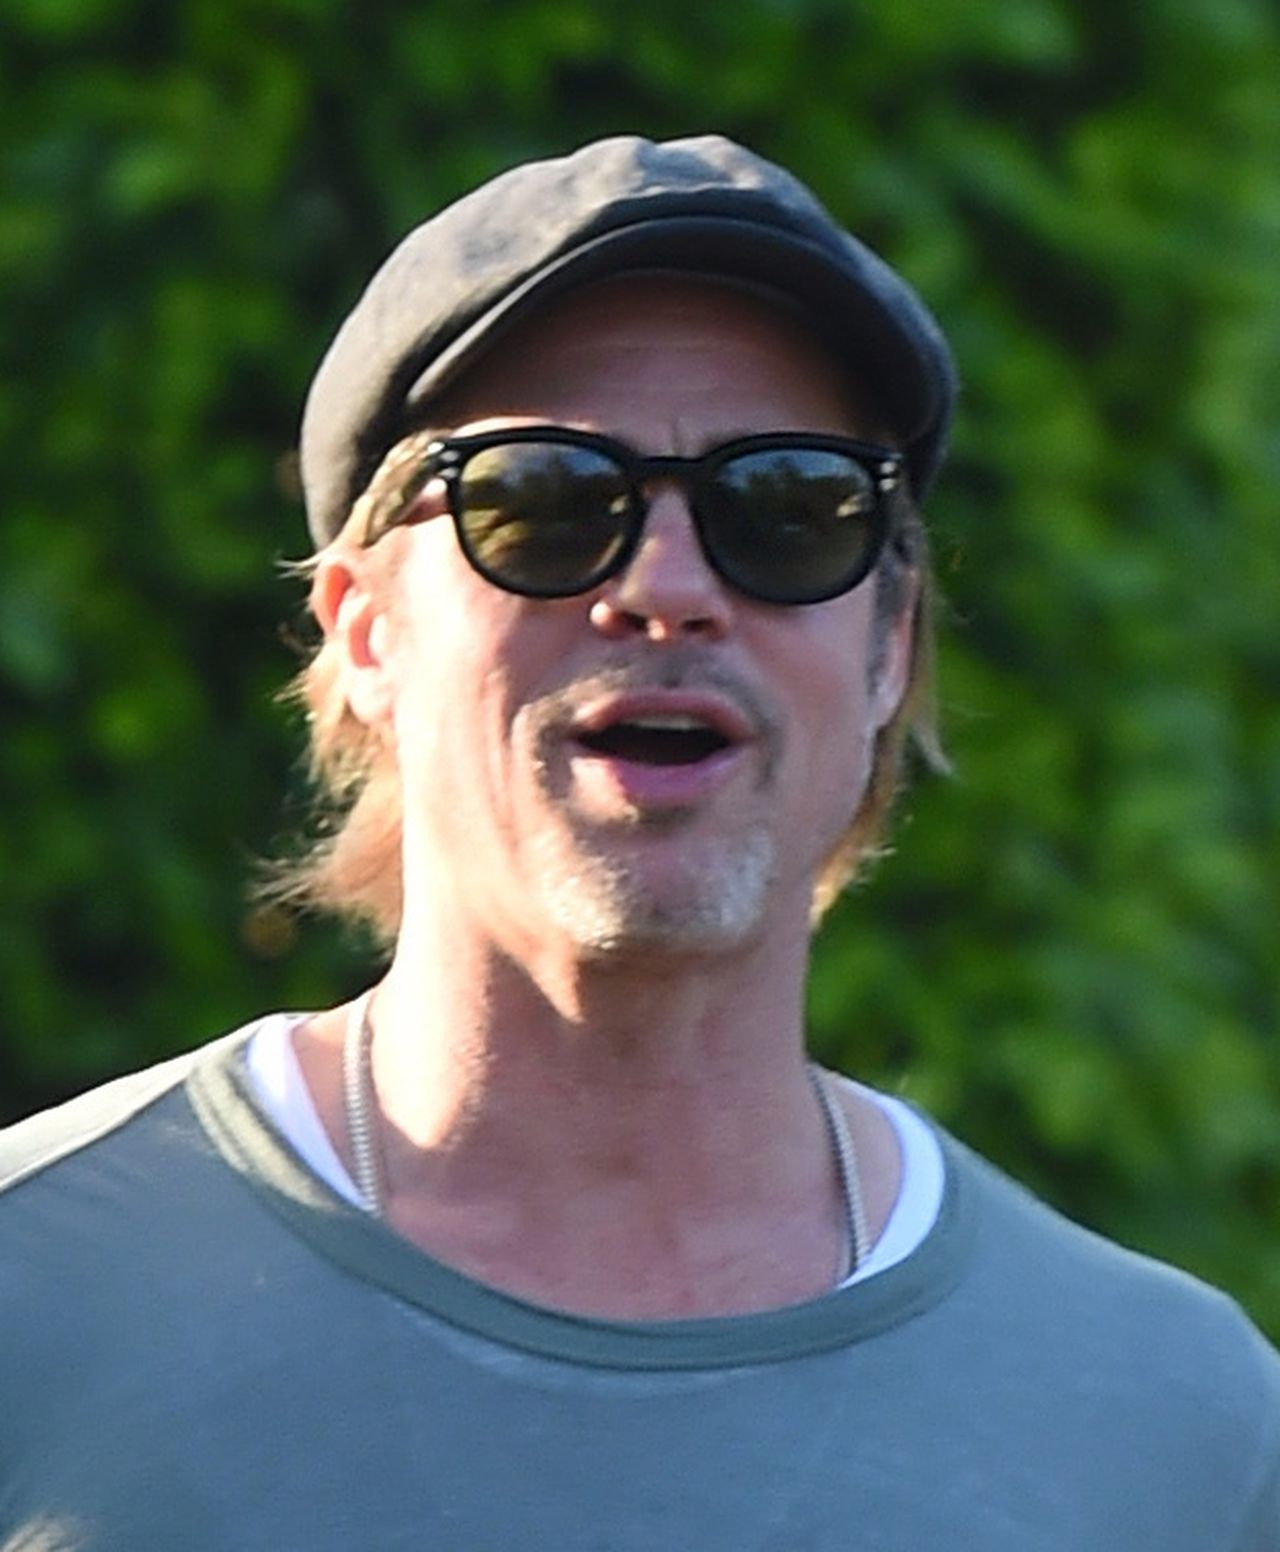 PREMIUM EXCLUSIVE - This is the moment Brad Pitt smiles cheekily as he is asked on camera the question that the world wants to know: Are you getting back with Jennifer Aniston?